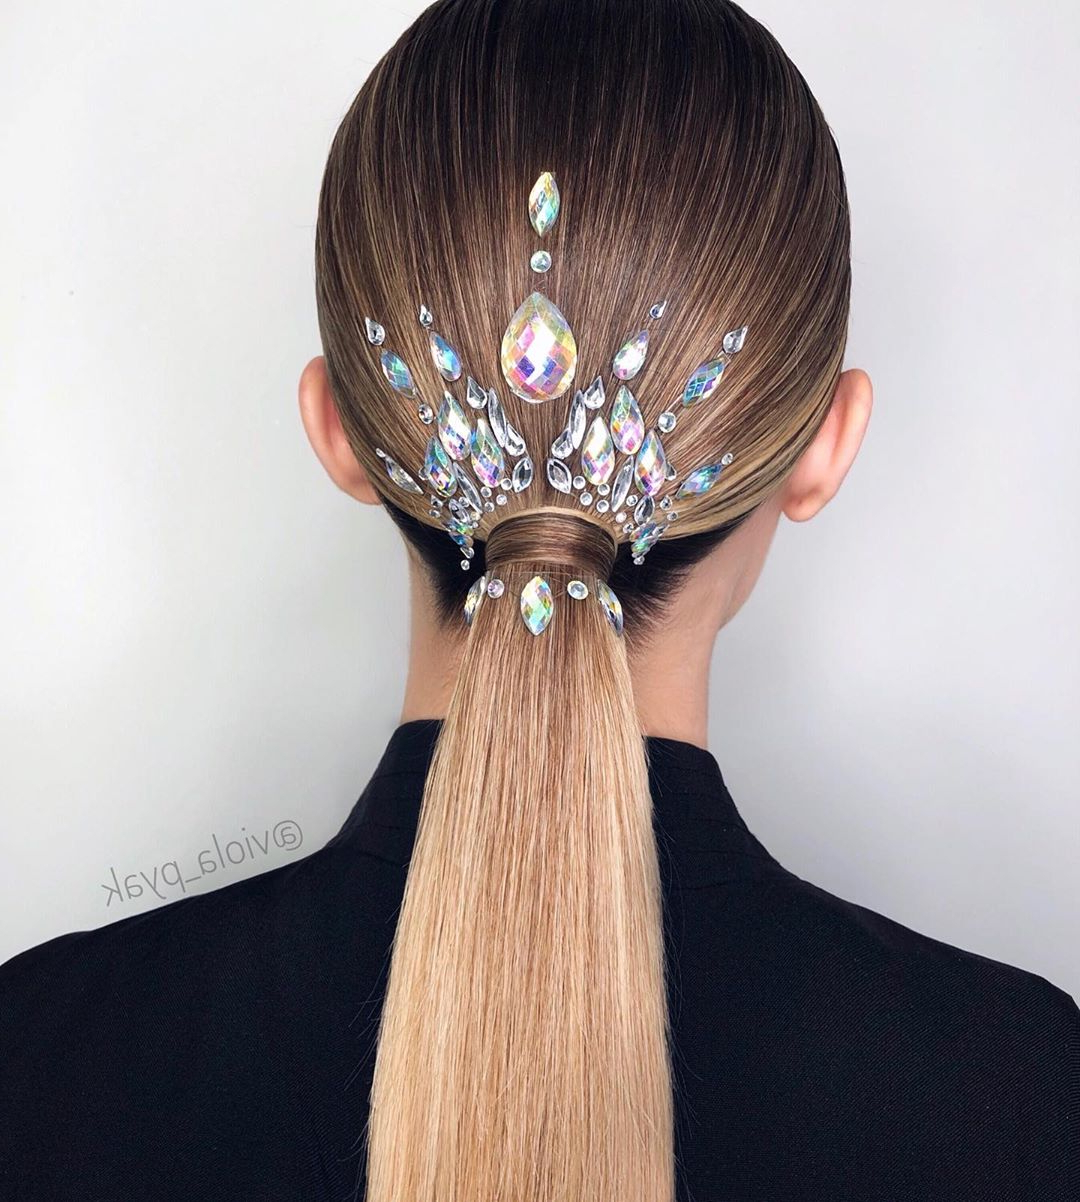 20 Ponytail Ideas And Tutorialsviola Pyak Intended For Most Up To Date Graded Ponytail Hairstyles With A Butterfly Clasp (Gallery 1 of 20)